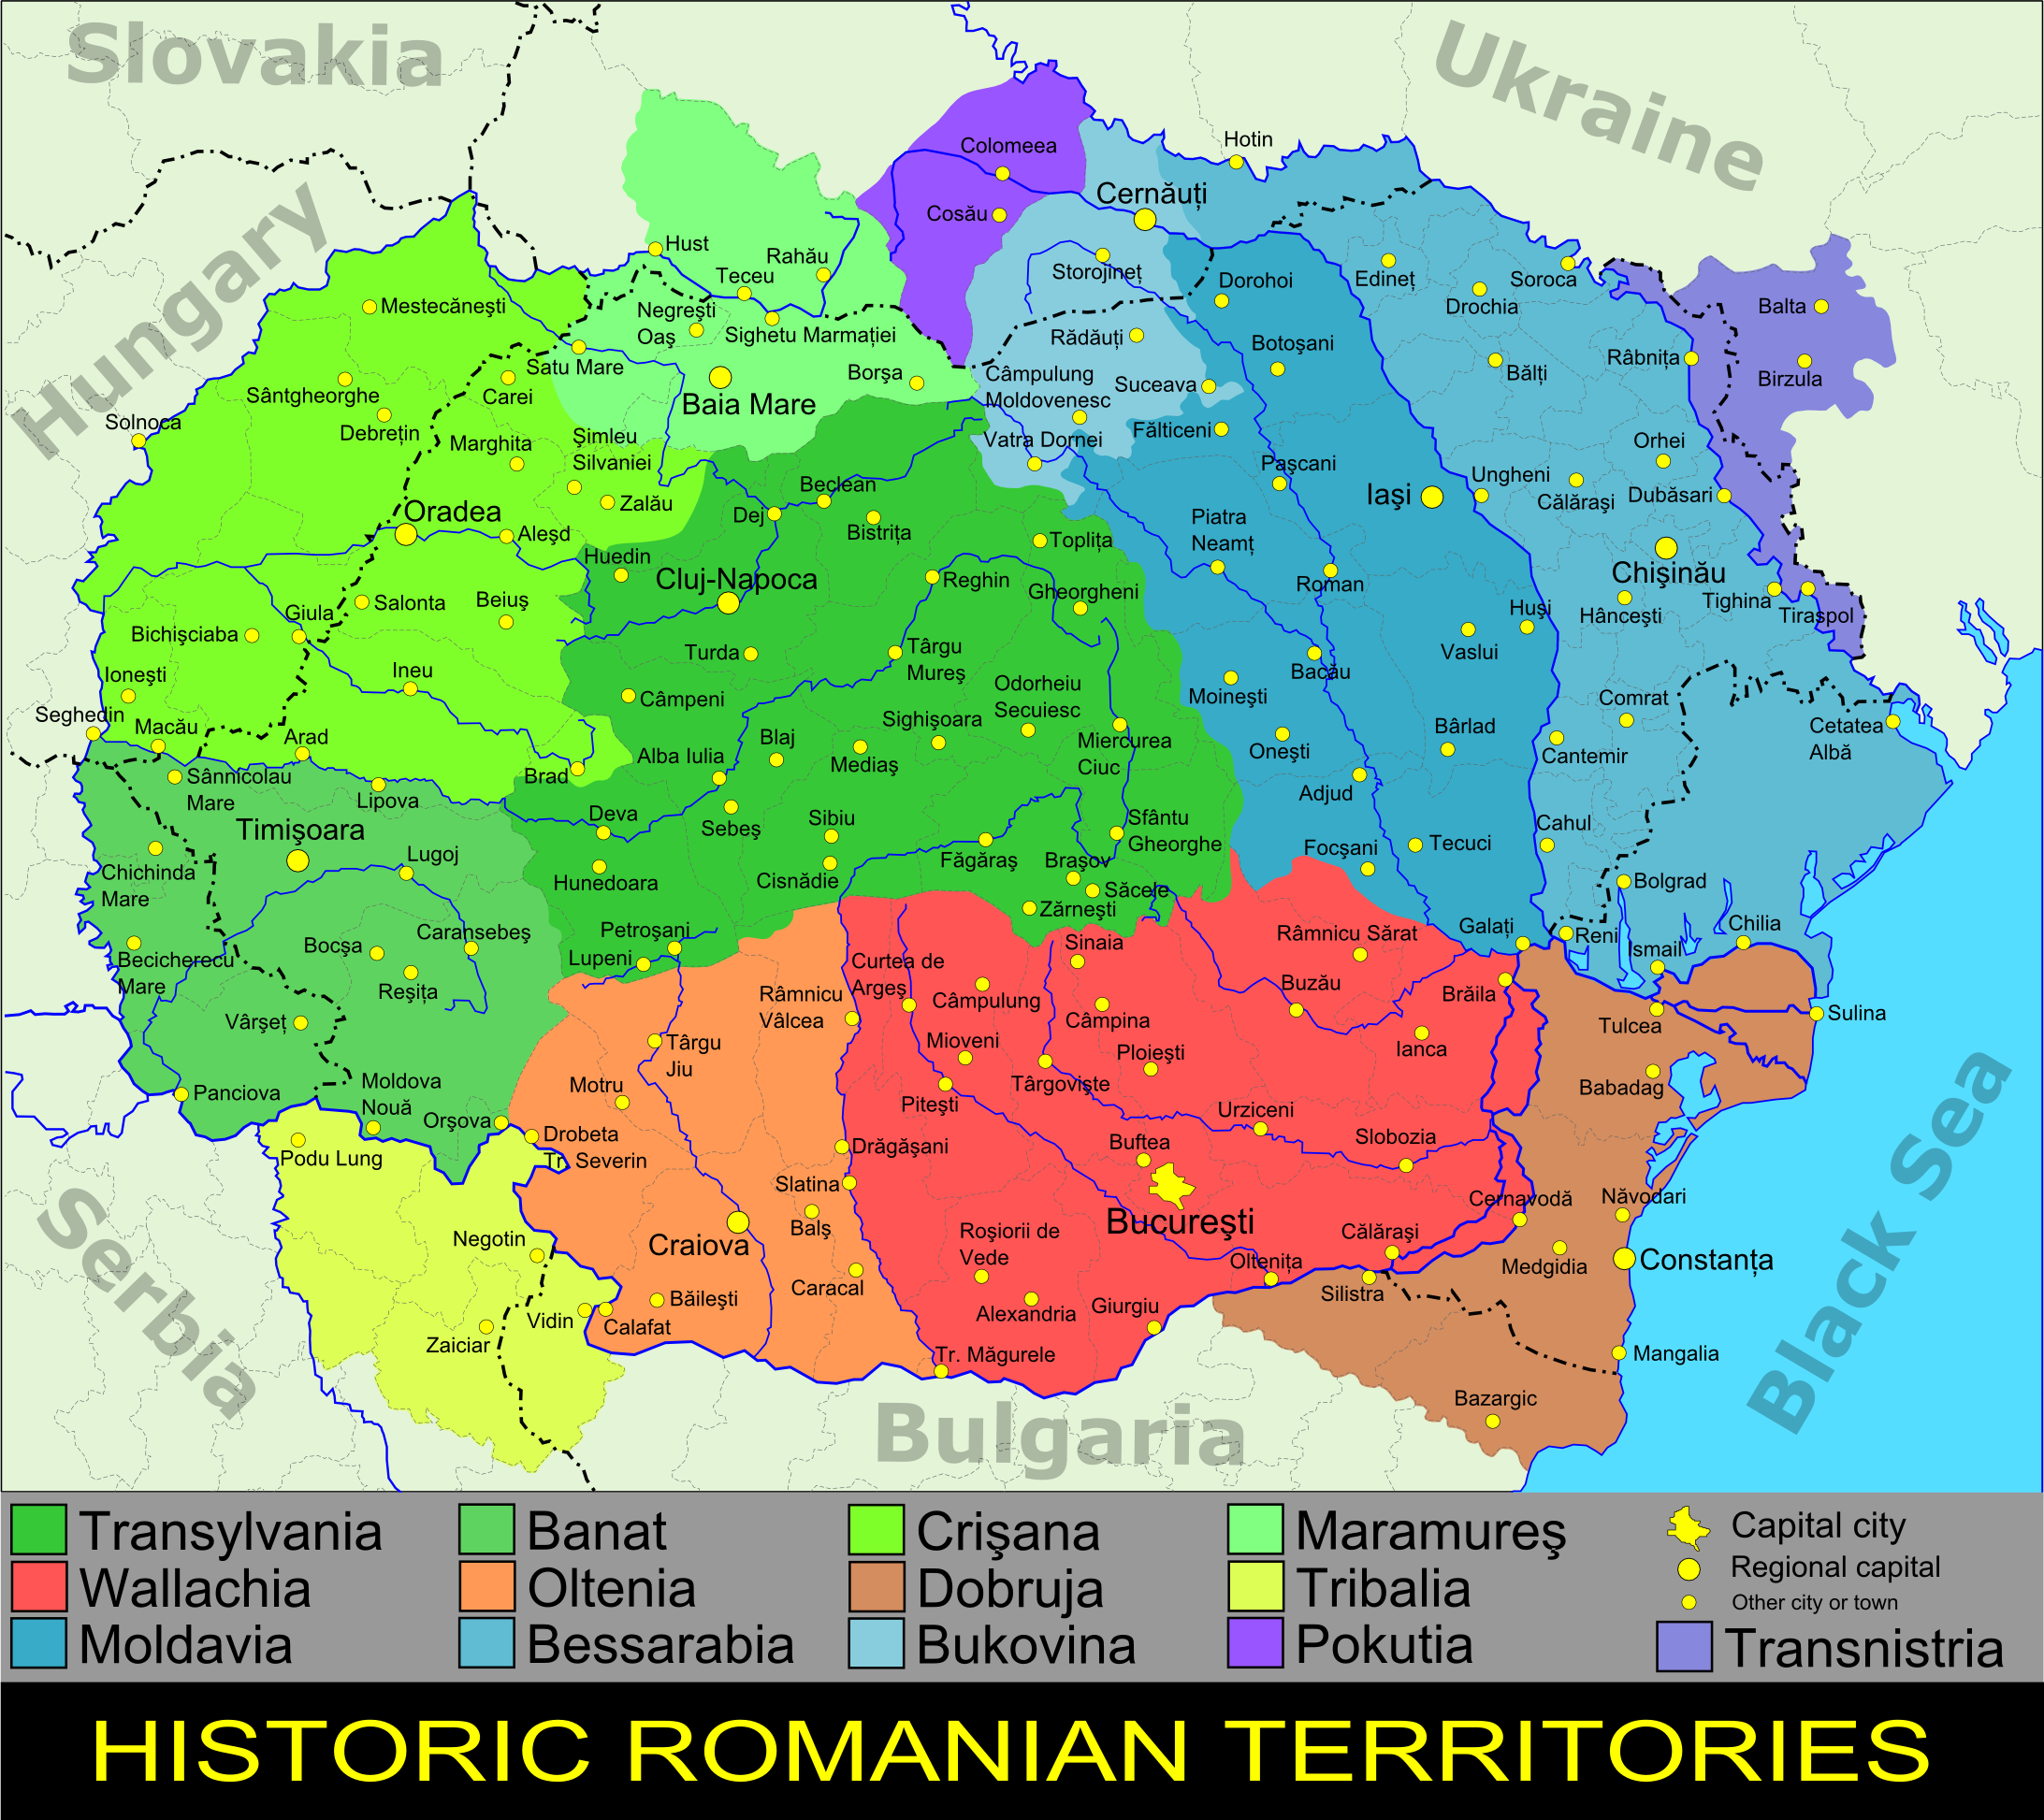 Historic Romanian territories